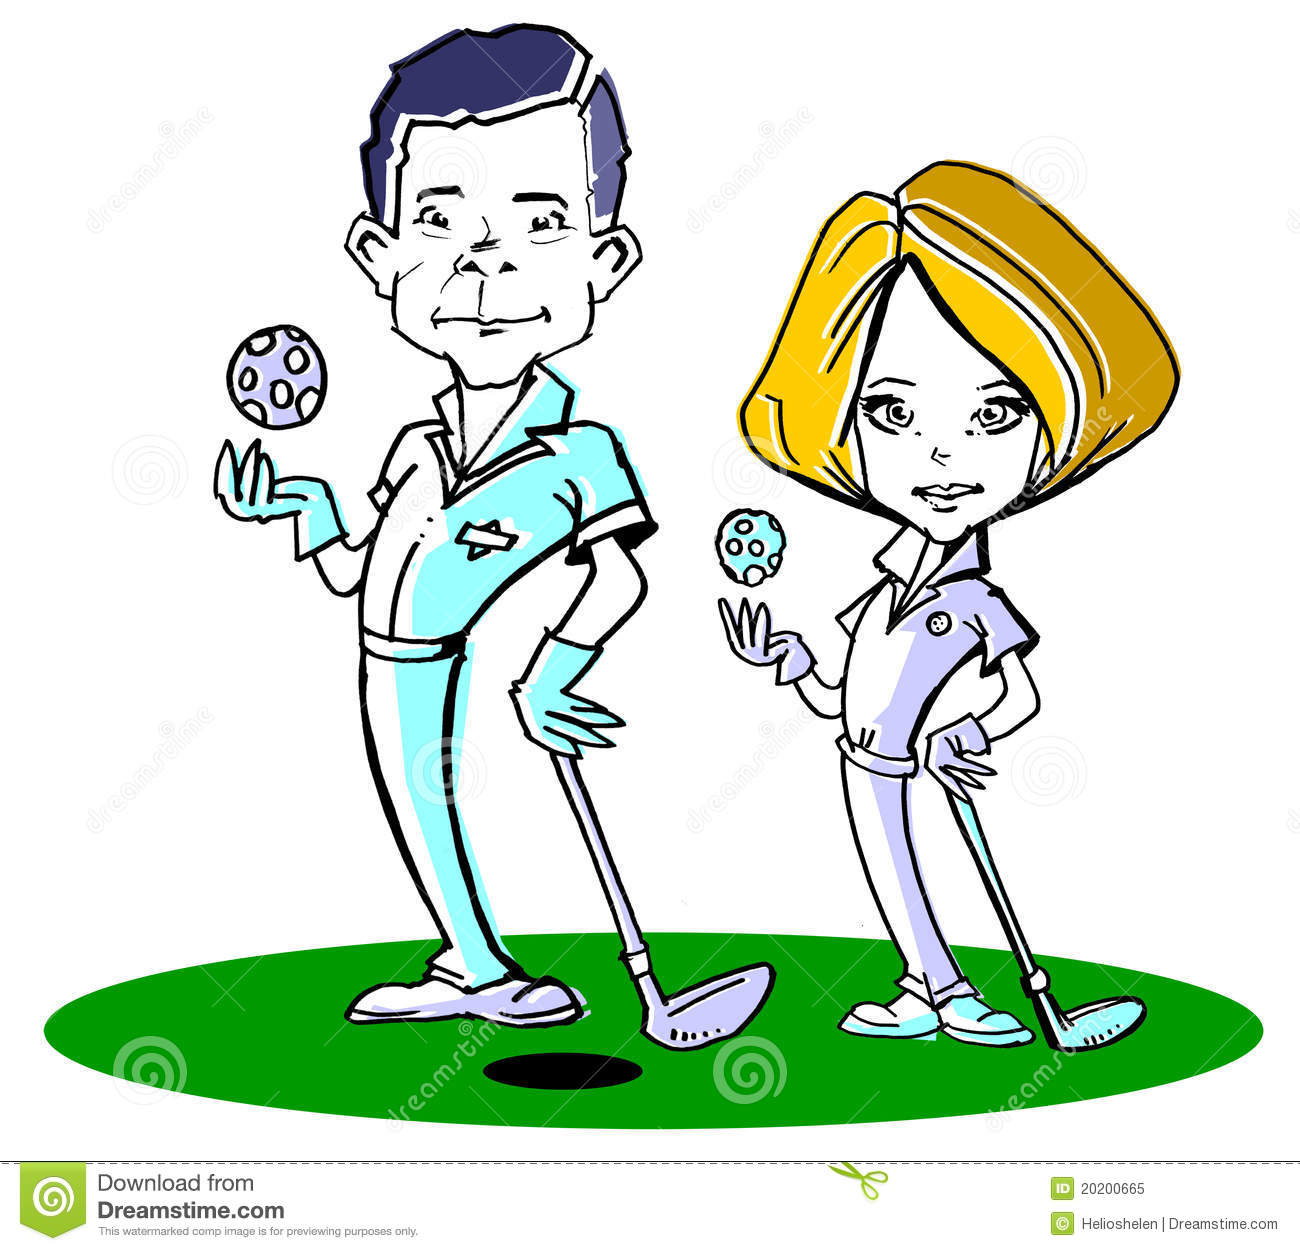 Couples golf clip art.